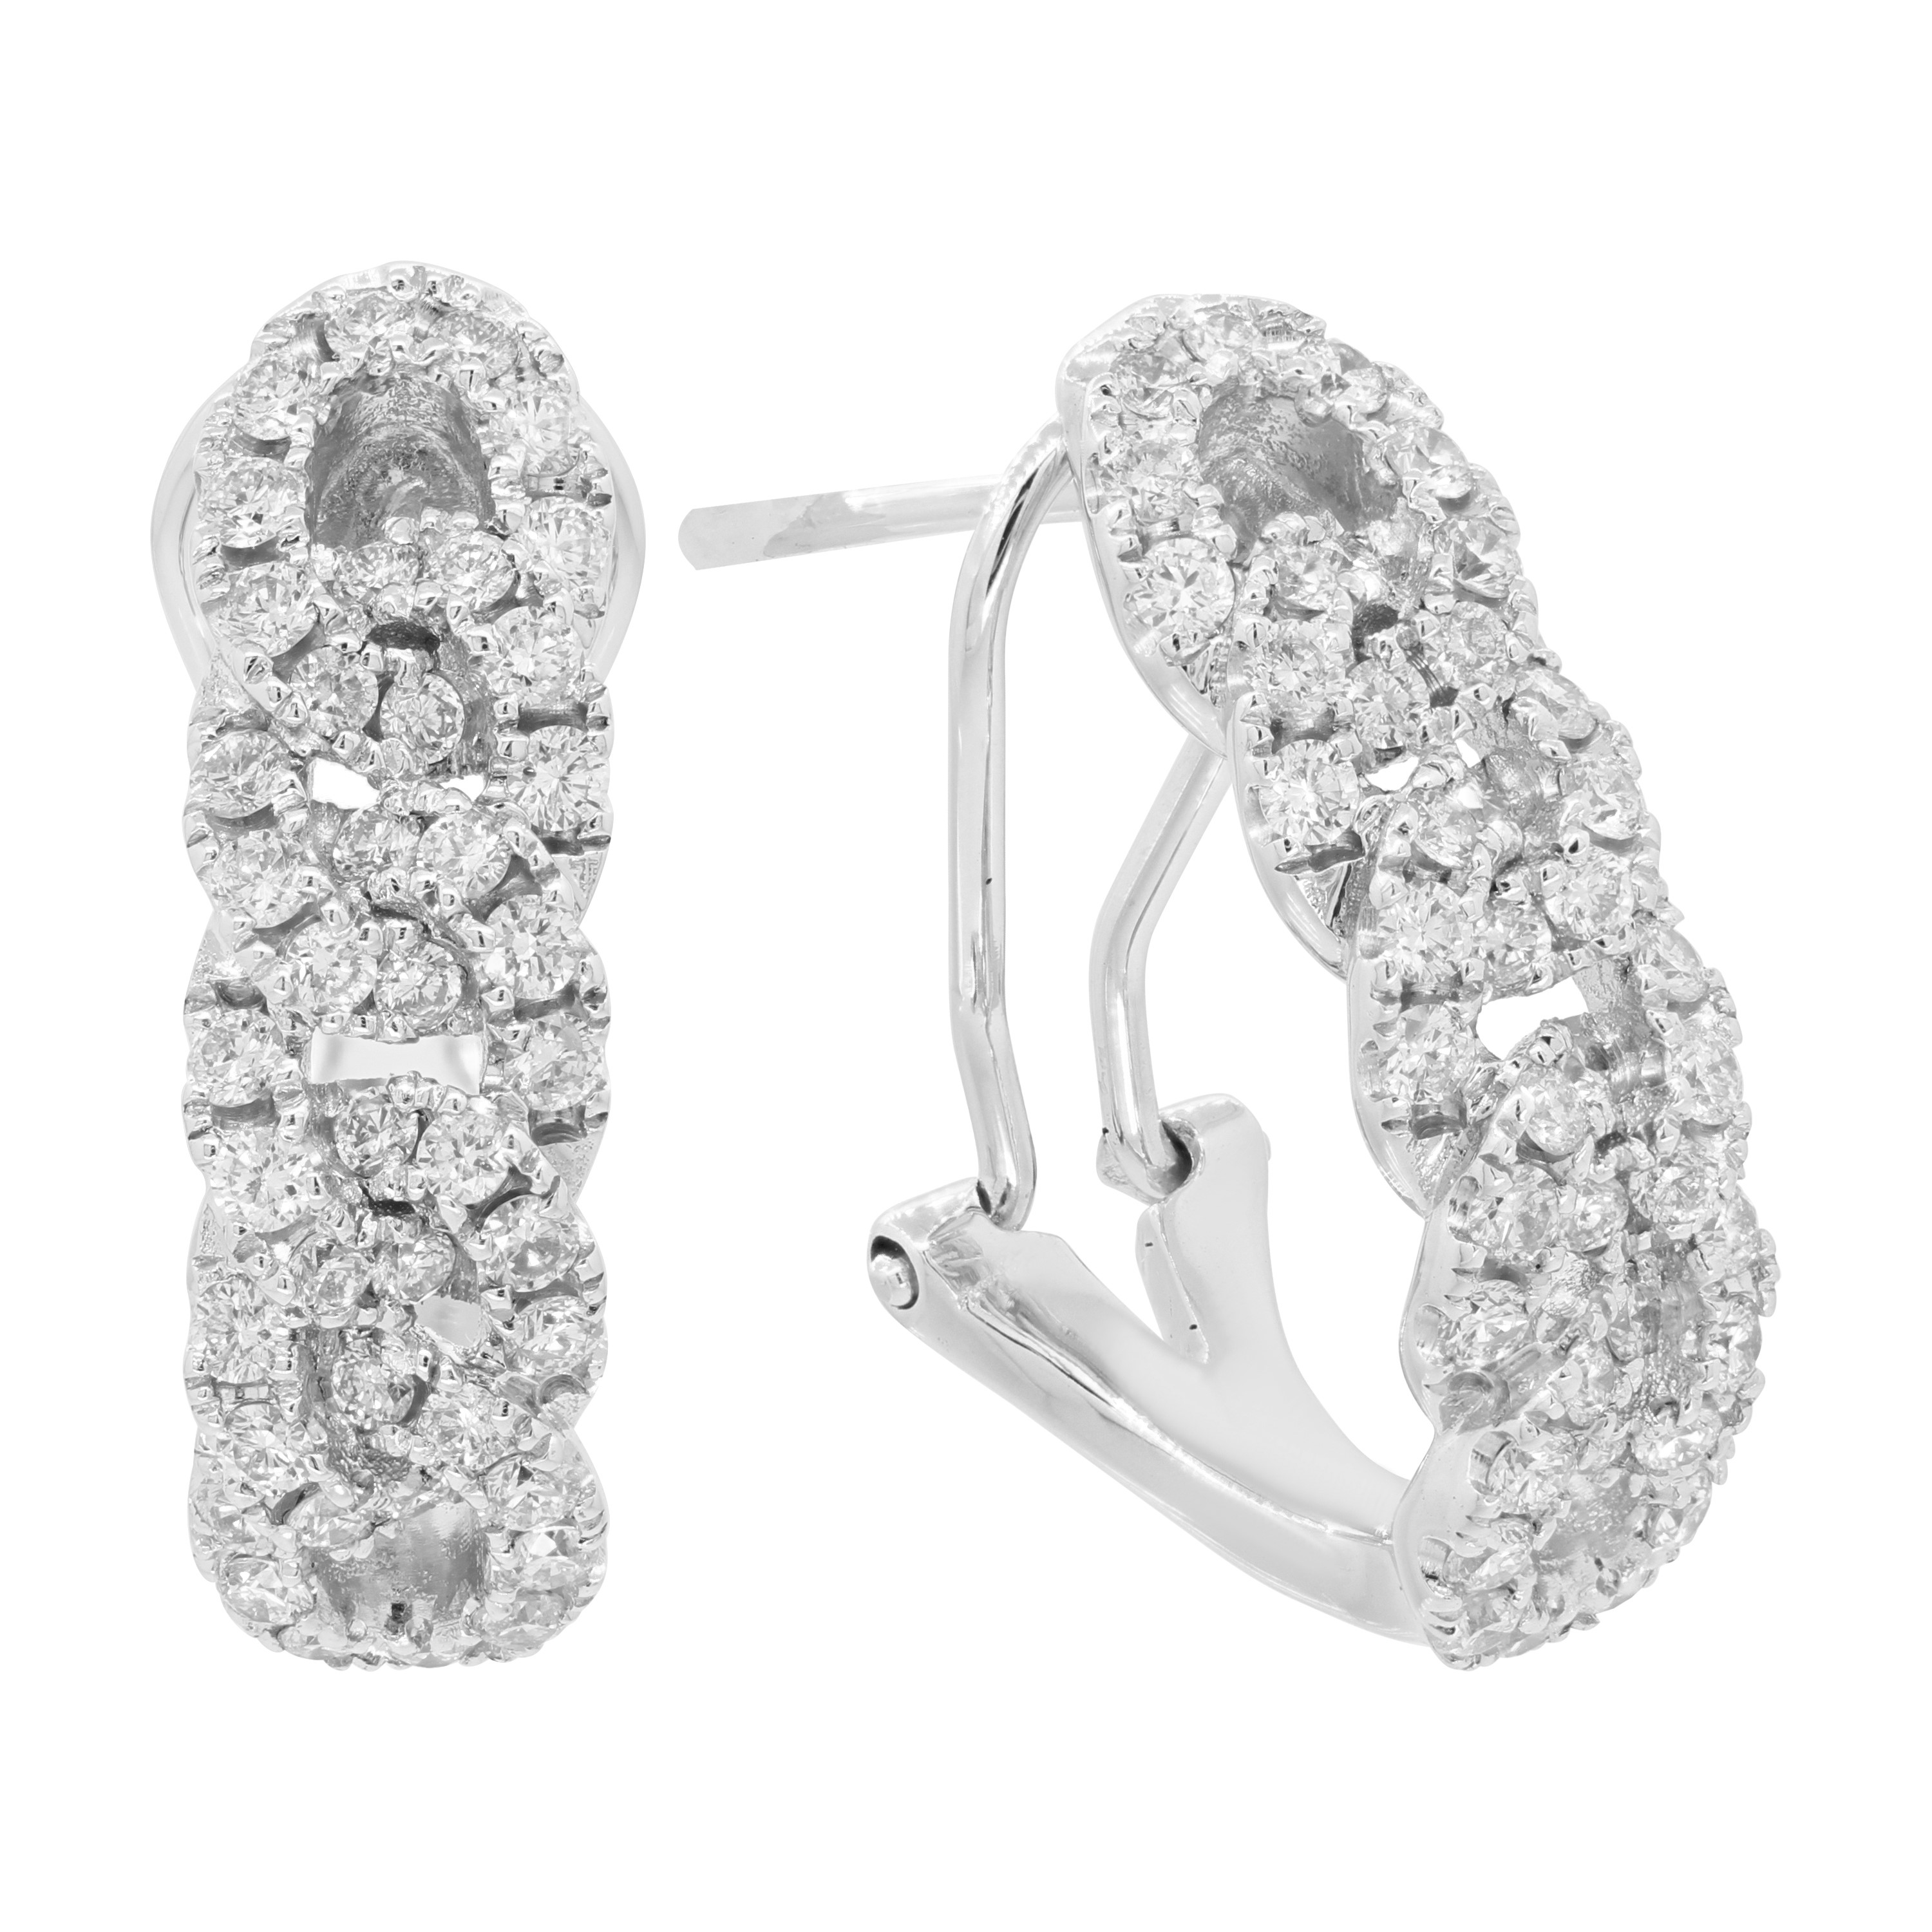 LONDON FINE JEWELRY 14K WHITE GOLD 0.98 CWT OVER-LAP EARRINGS